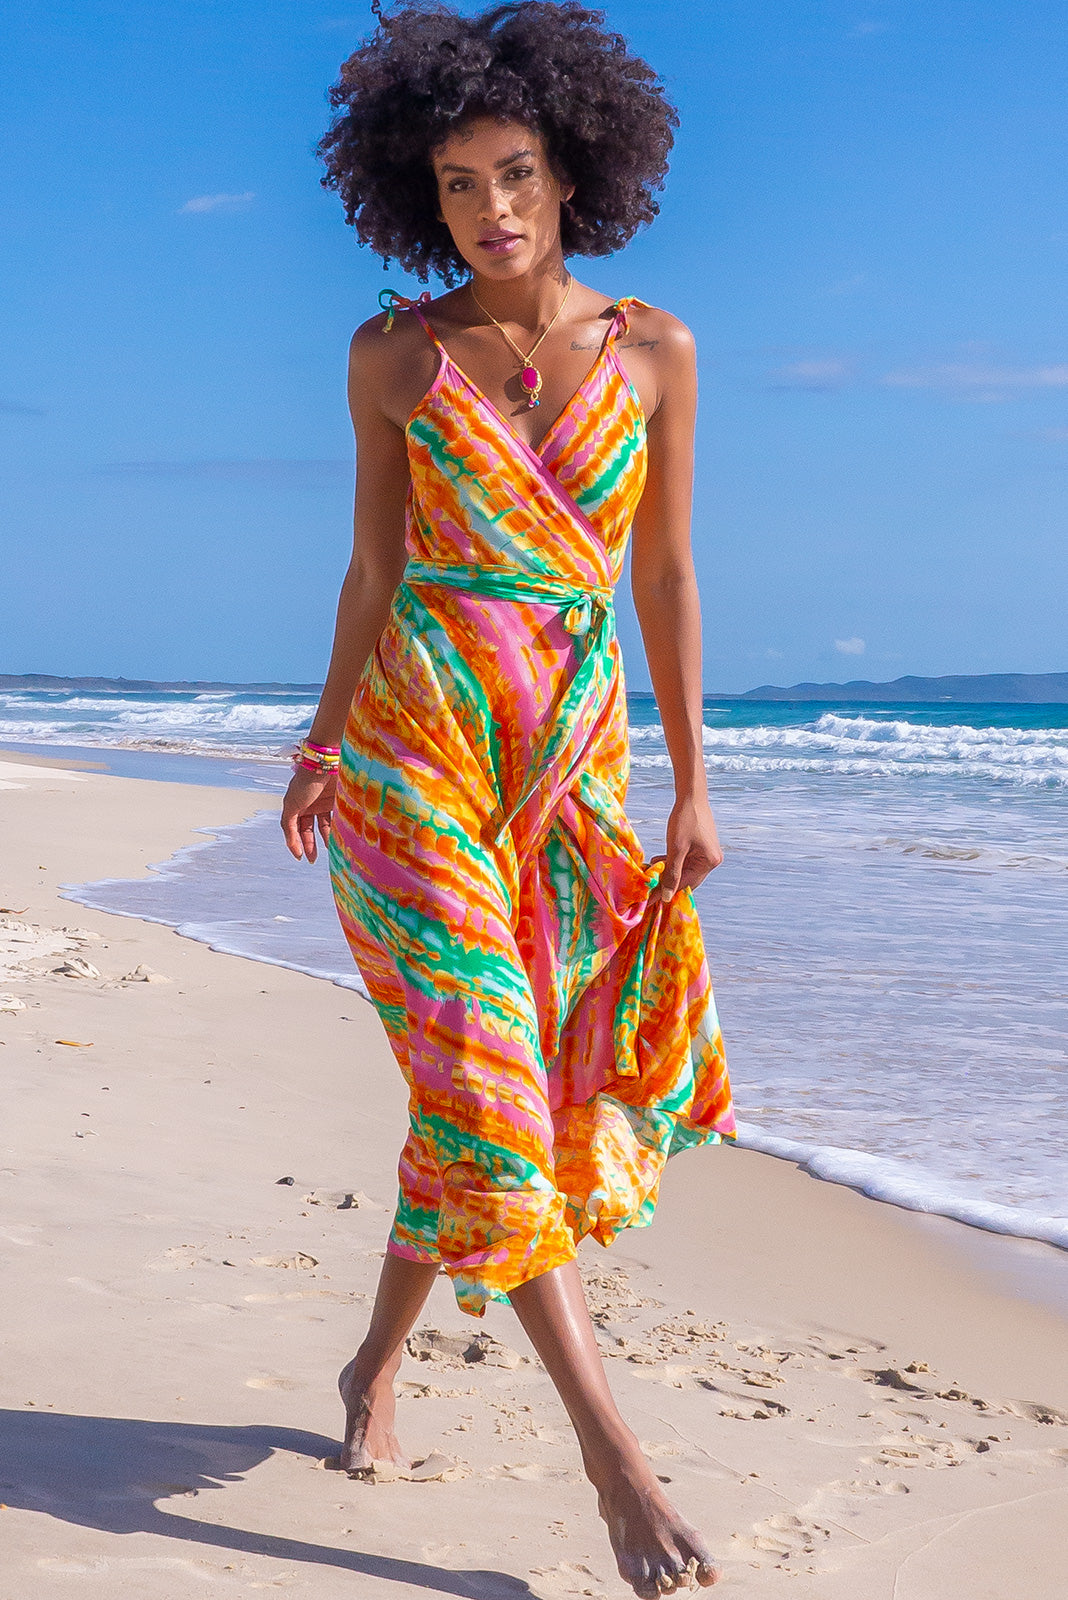 Hot island style, the Byron Sunset Tie Dye Maxi Wrap Dress features adjustable tie up shoulder ties, dress hem slightly longer at back, and 100% rayon in bright tie dye style print in white, orange, pink and green.